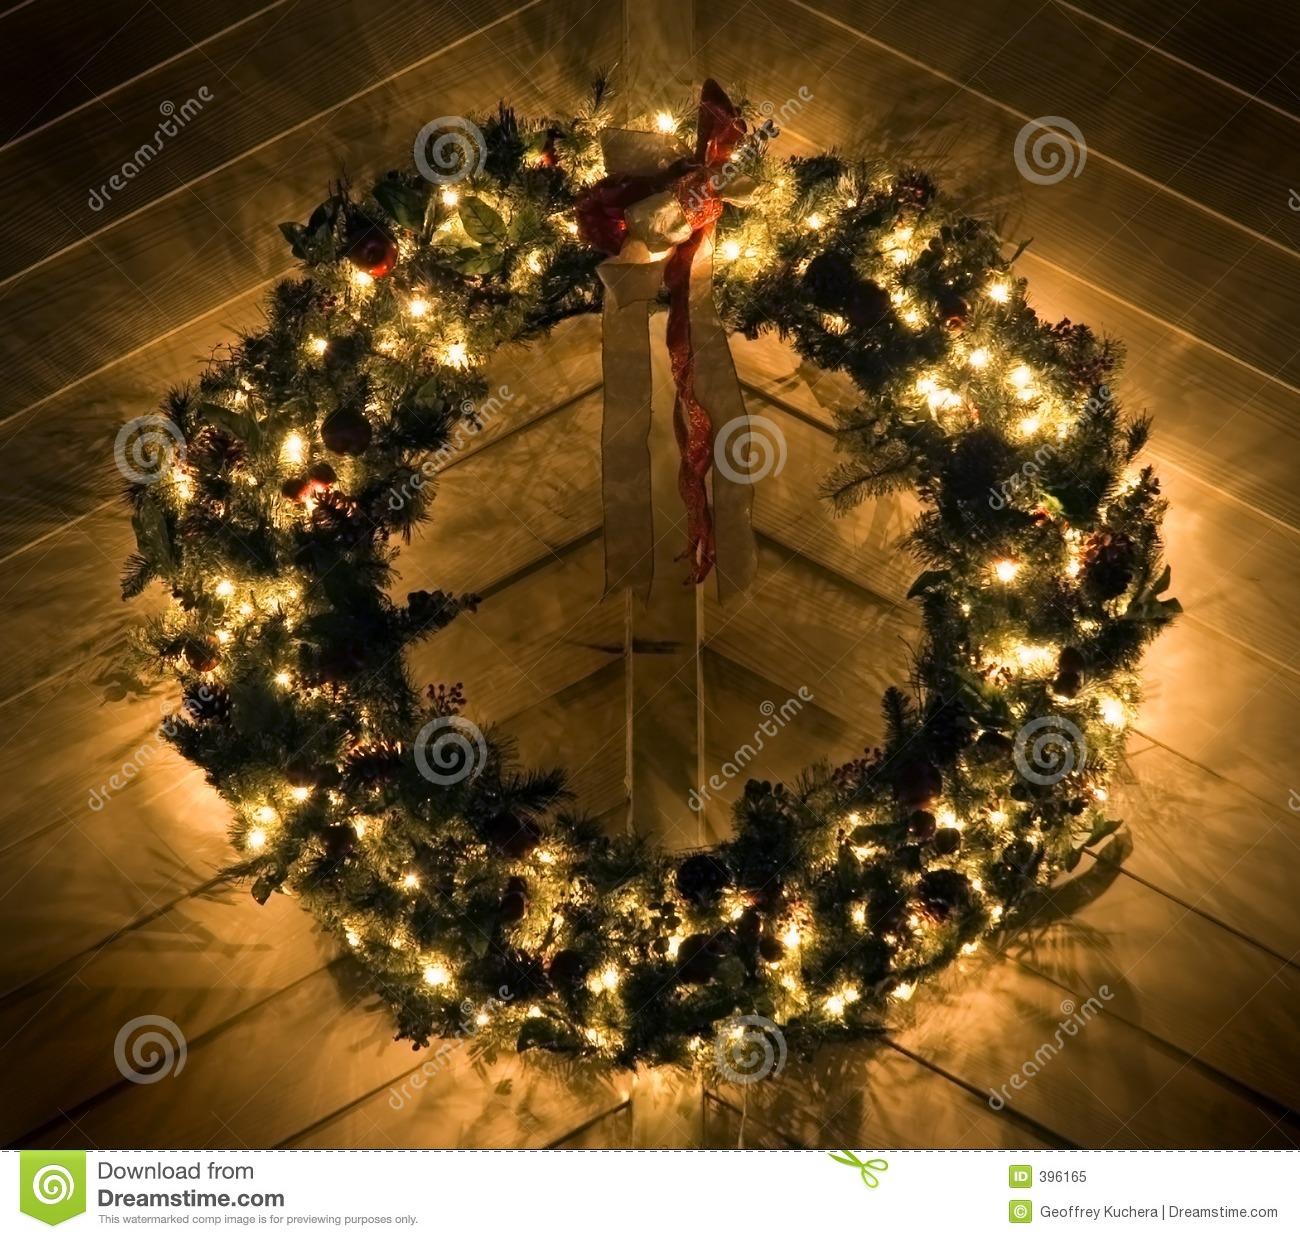 48 Lighted Christmas Wreath